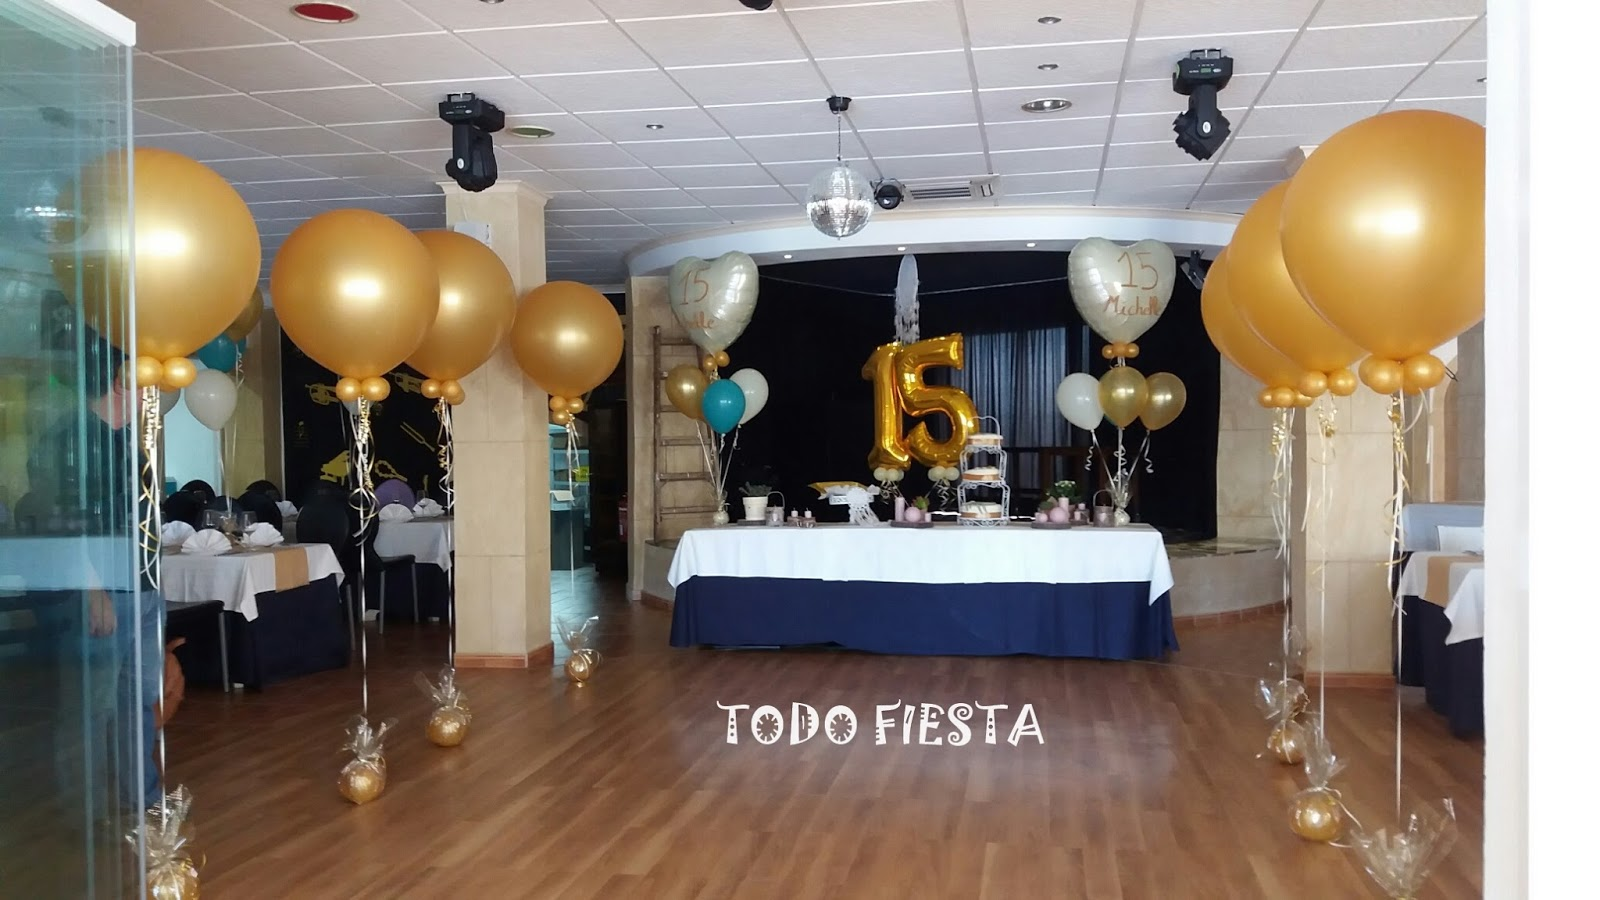 Decoraci n con globos de todo fiesta decoracion para 15 a os for Decoracion para 15 anos 2016